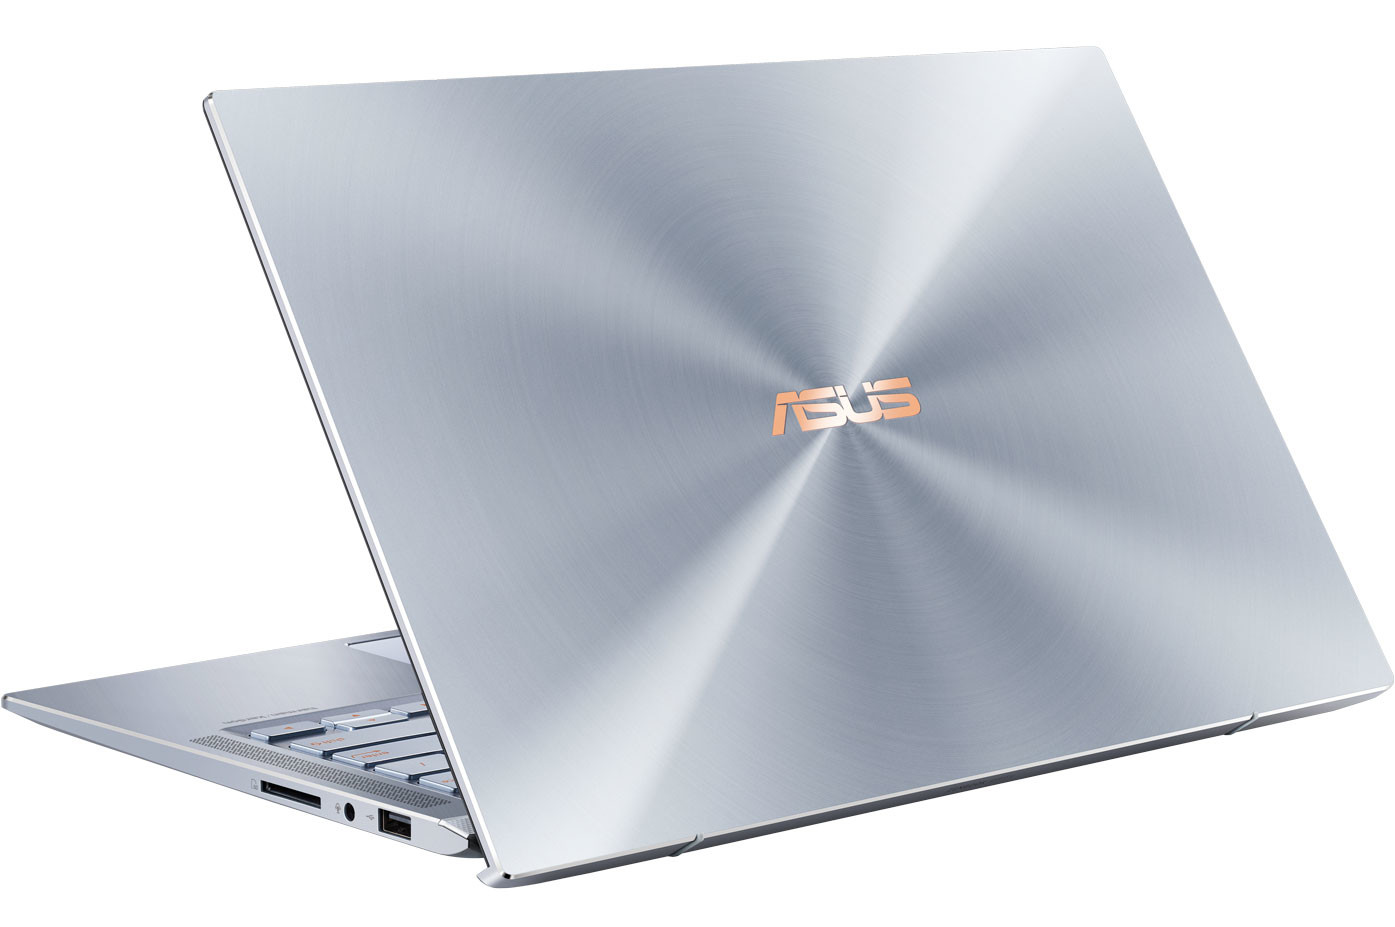 ASUS ZenBook 14 (UX431) Now Available | TechPowerUp